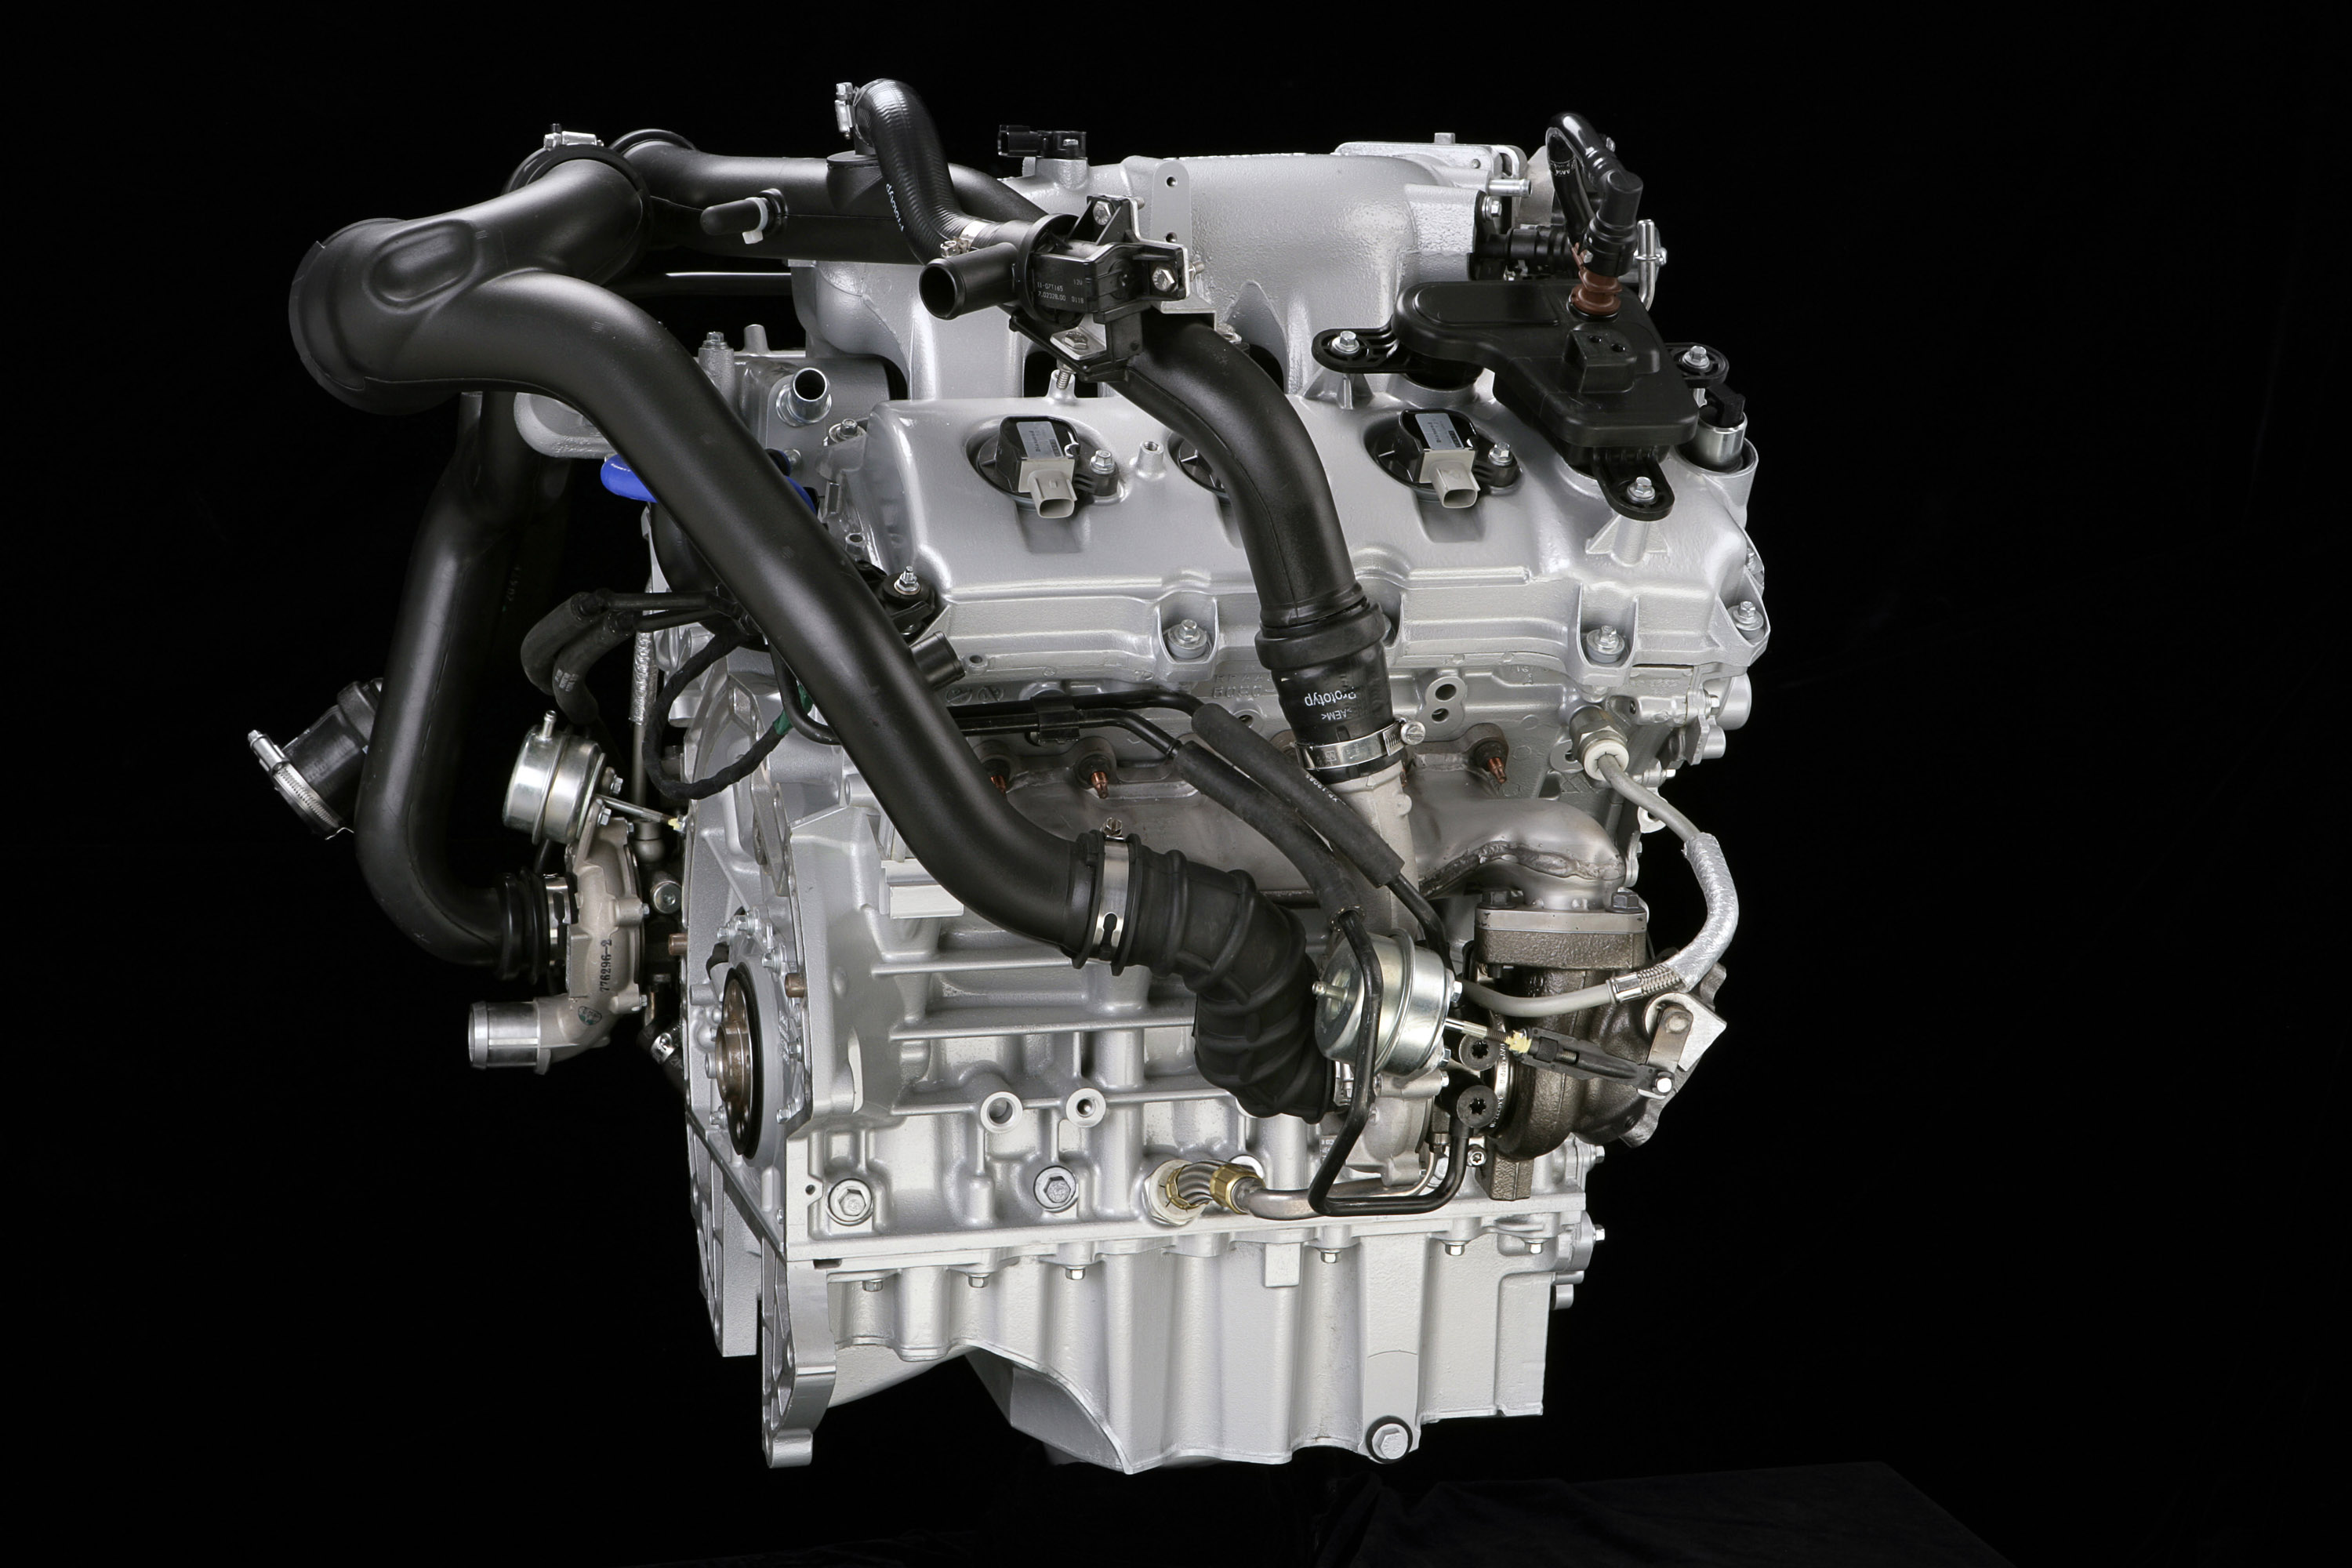 Red Hot Torture New Ecoboost Engine S Turbochargers Glow In